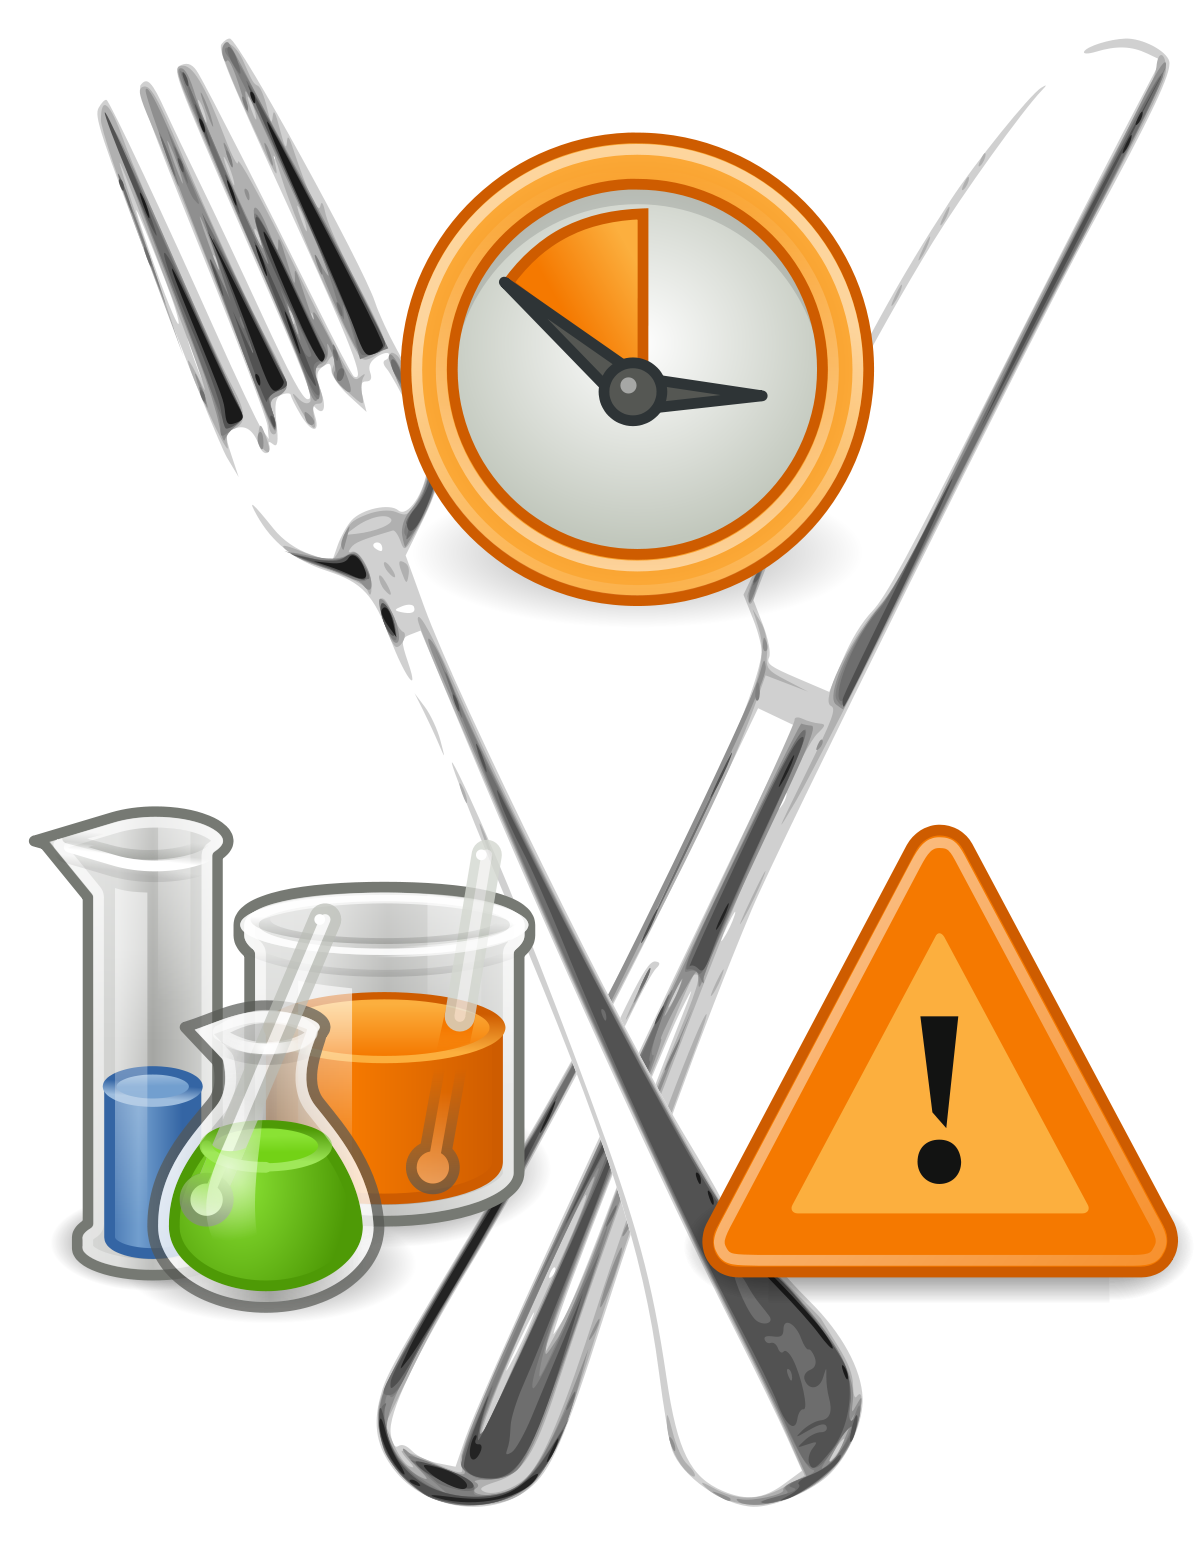 assessment clipart health inspection